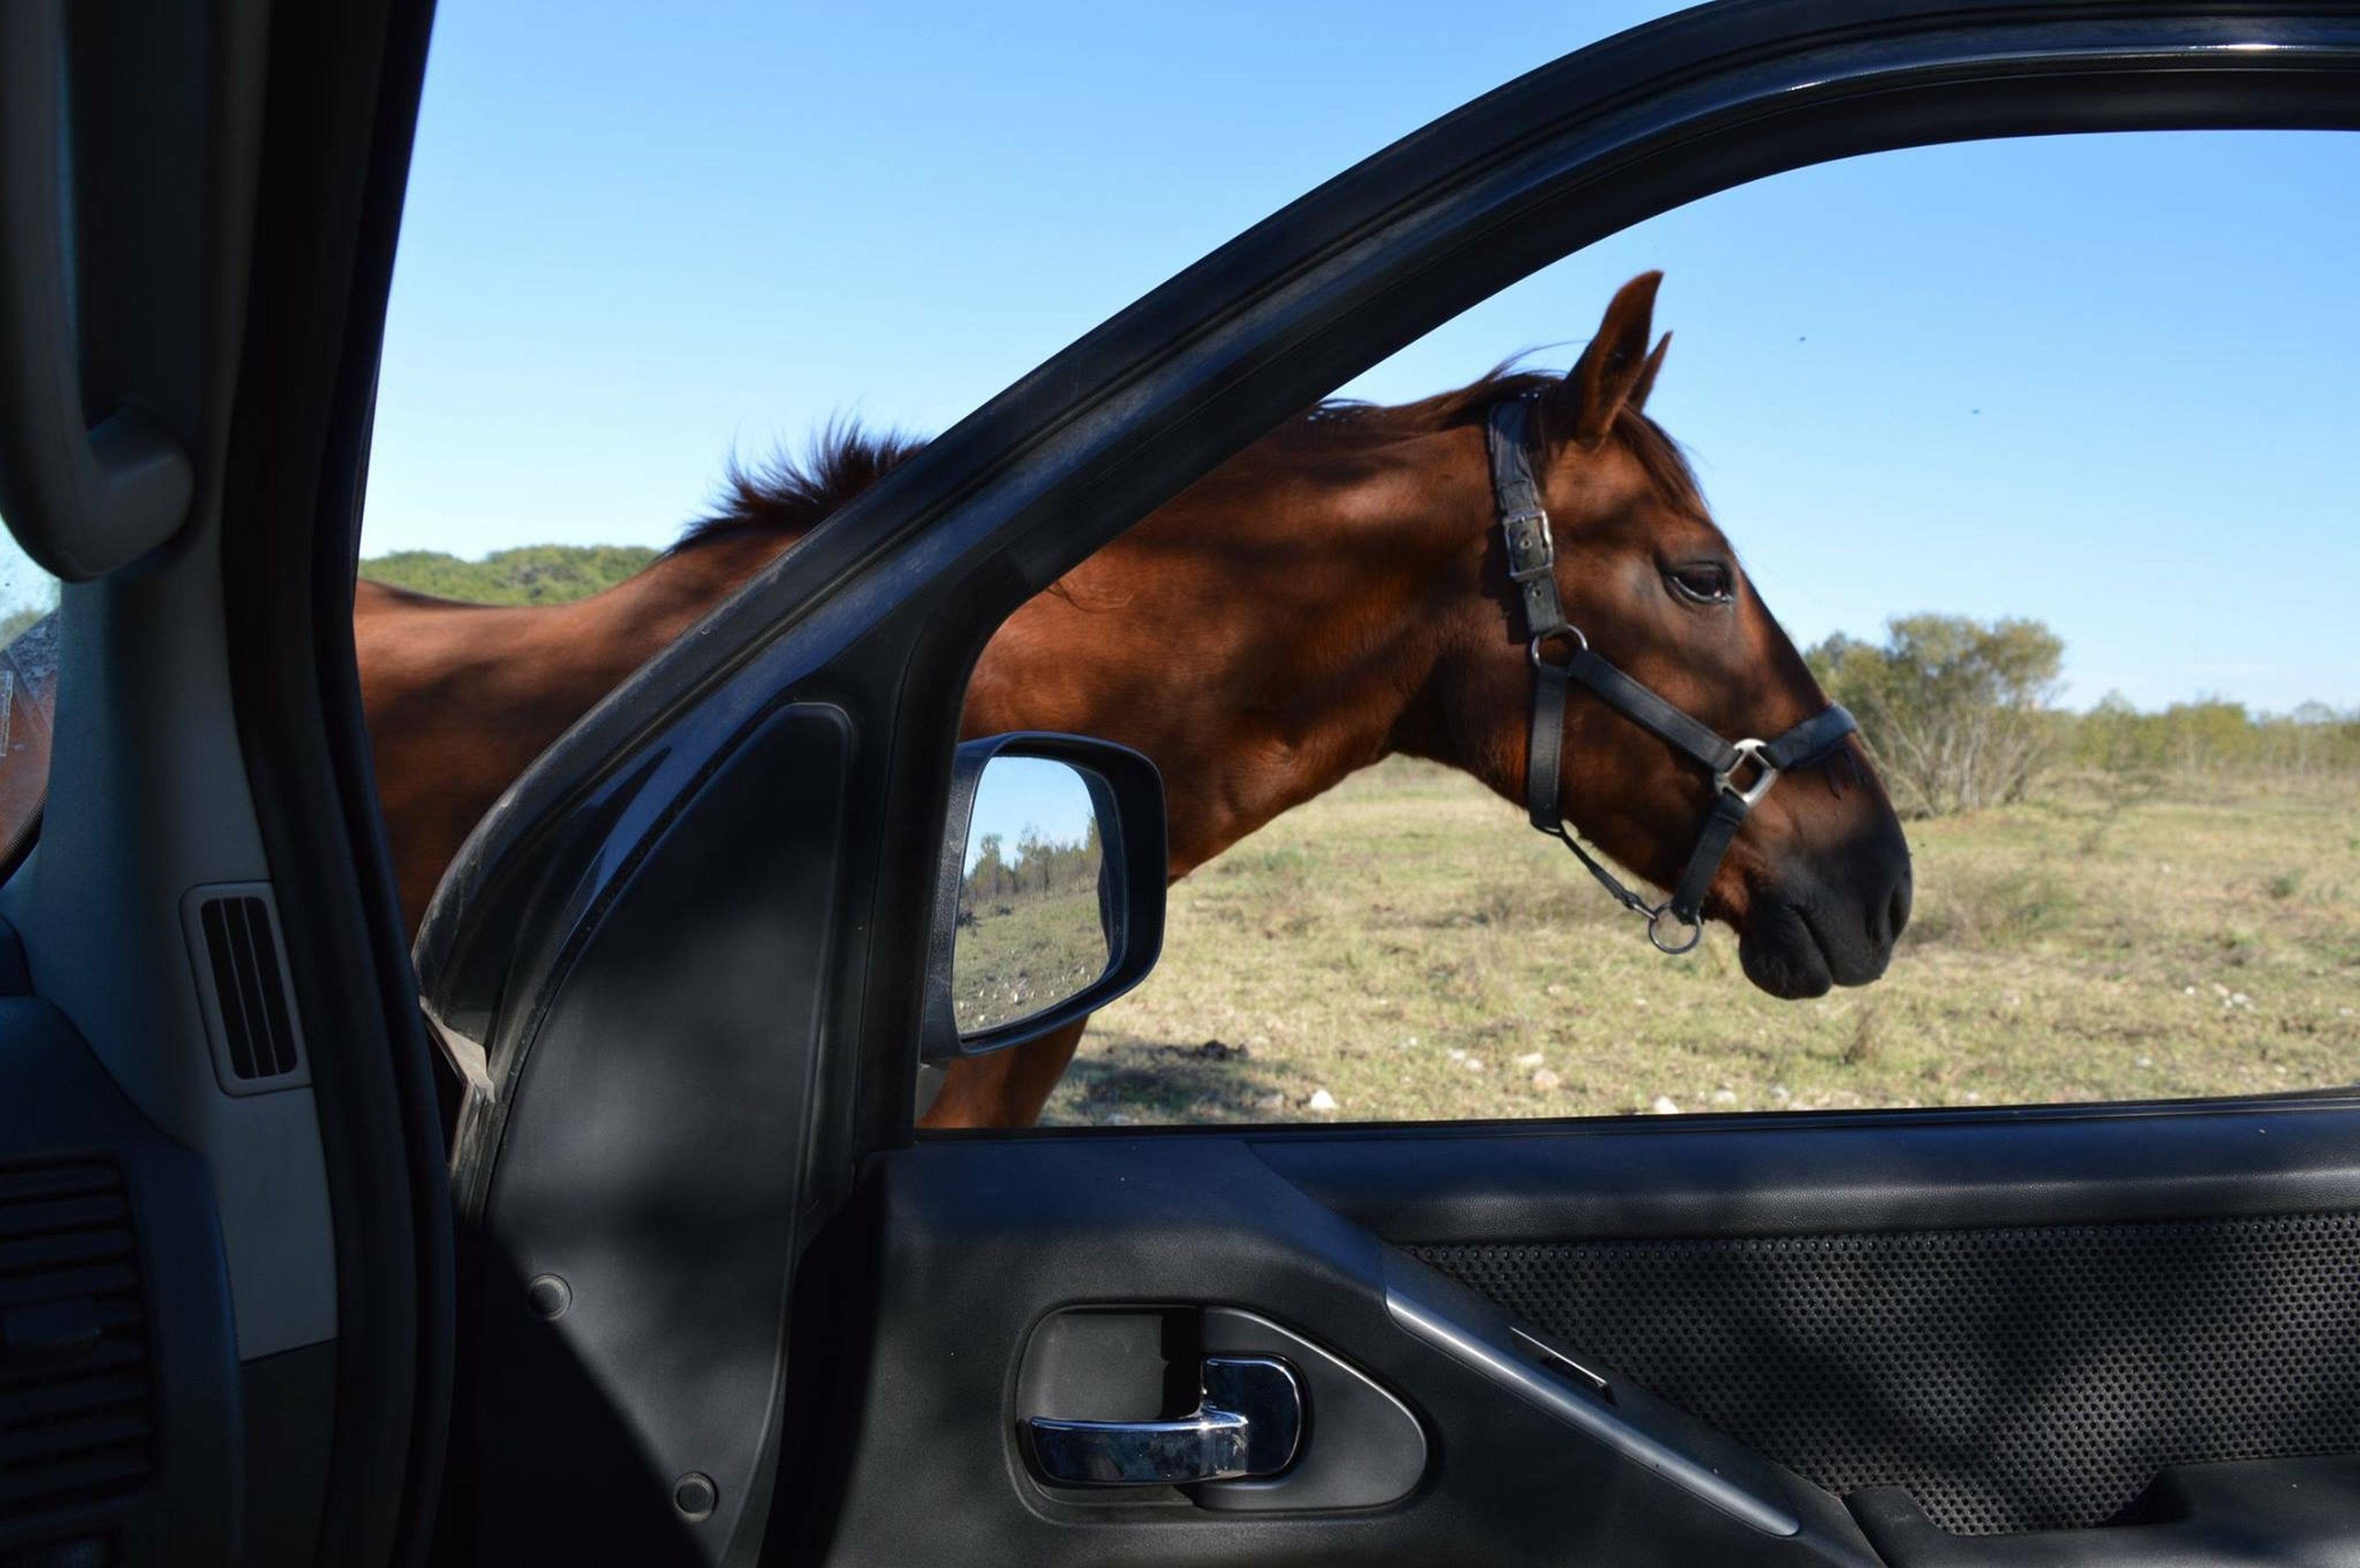 transportation, land vehicle, mode of transport, car, domestic animals, horse, animal themes, one animal, mammal, part of, clear sky, close-up, sky, cropped, sunlight, side-view mirror, vehicle interior, no people, day, animal head